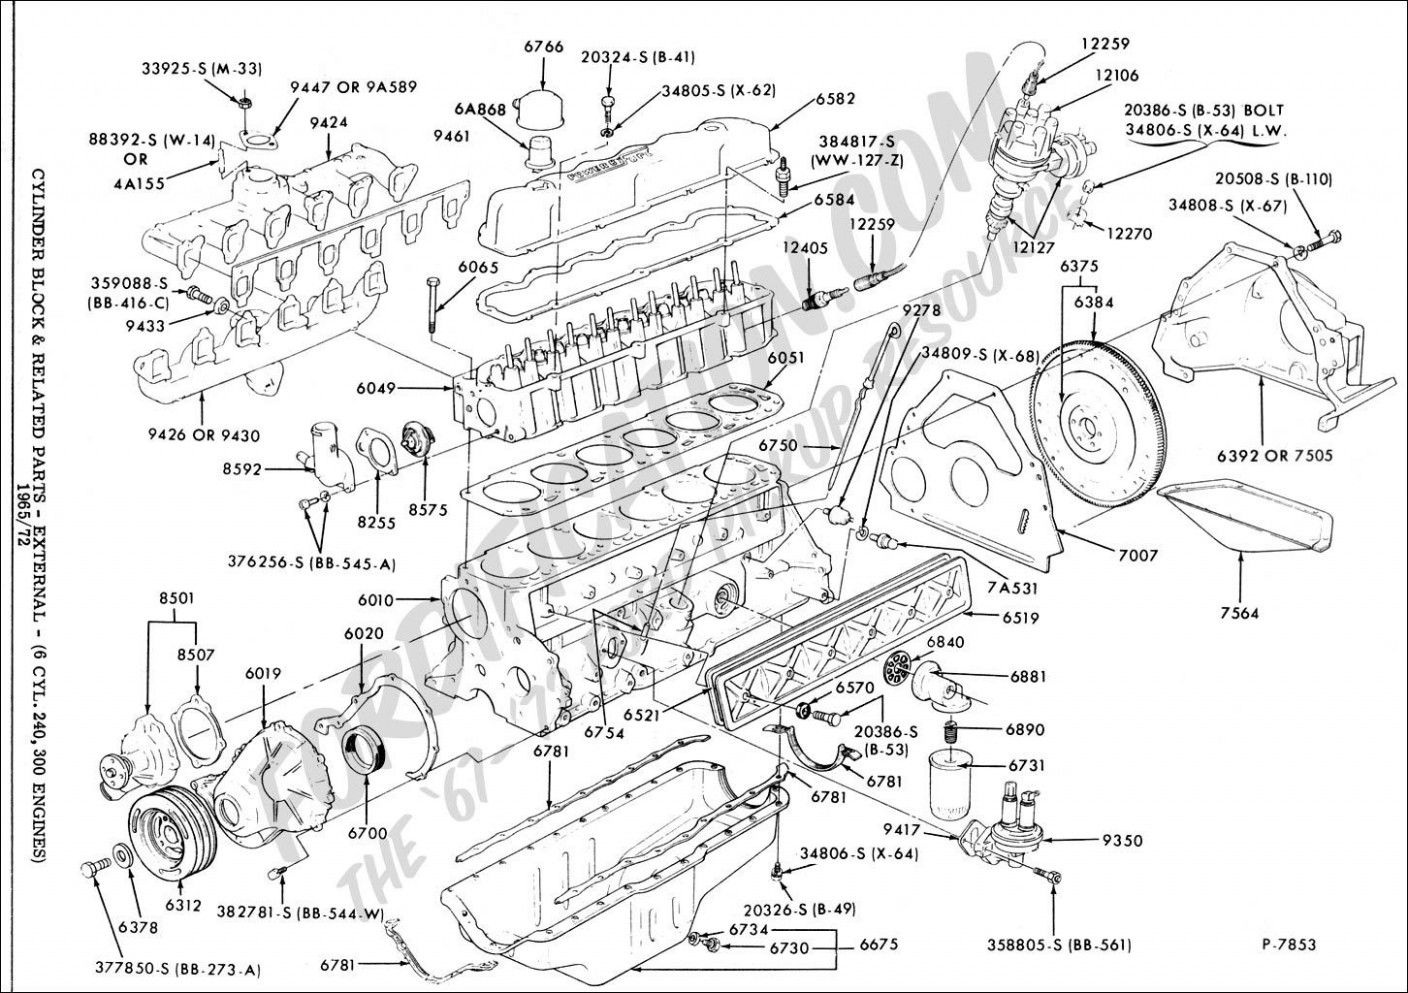 [DIAGRAM_38ZD]  Diagram Of Inline Engine in 2020 | Ford truck, Ford f150, F150 | Inline Engine Diagram |  | Pinterest